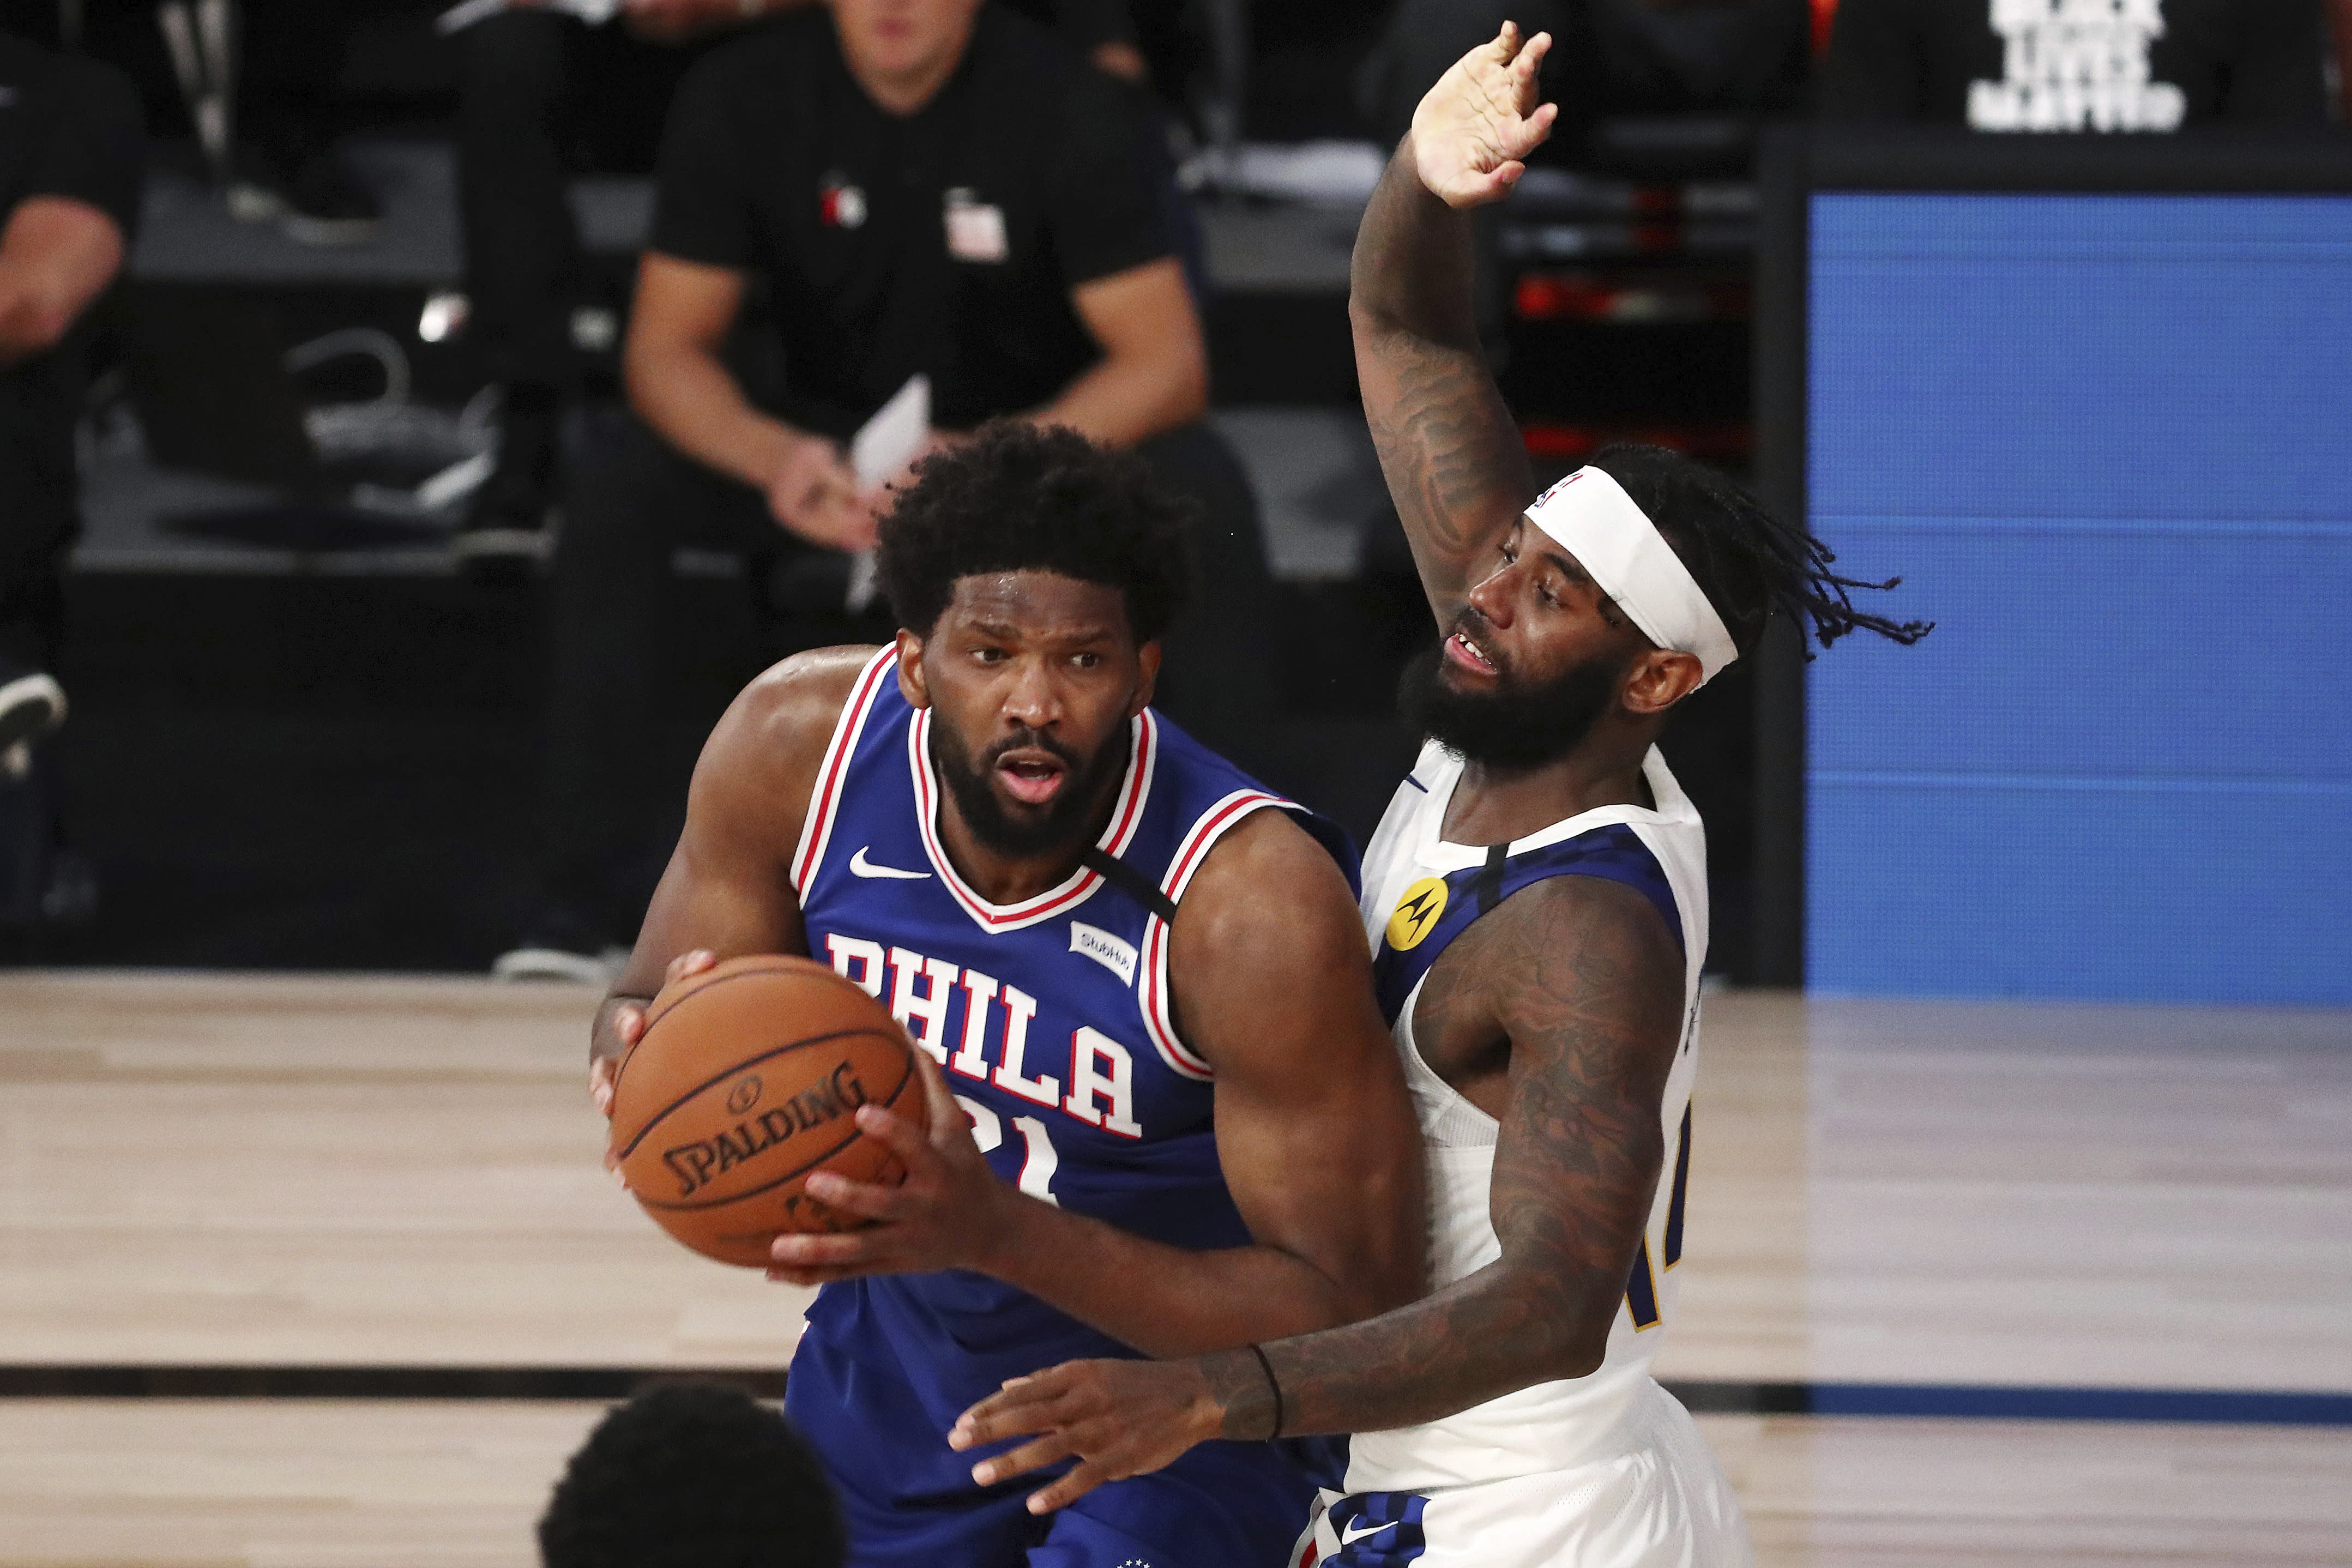 Philadelphia 76ers center Joel Embiid (21) drives to the basket against Indiana Pacers forward JaKarr Sampson during the third quarter of an NBA basketball game Saturday, Aug. 1, 2020, in Lake Buena Vista, Fla. (Kim Klement/Pool Photo via AP)